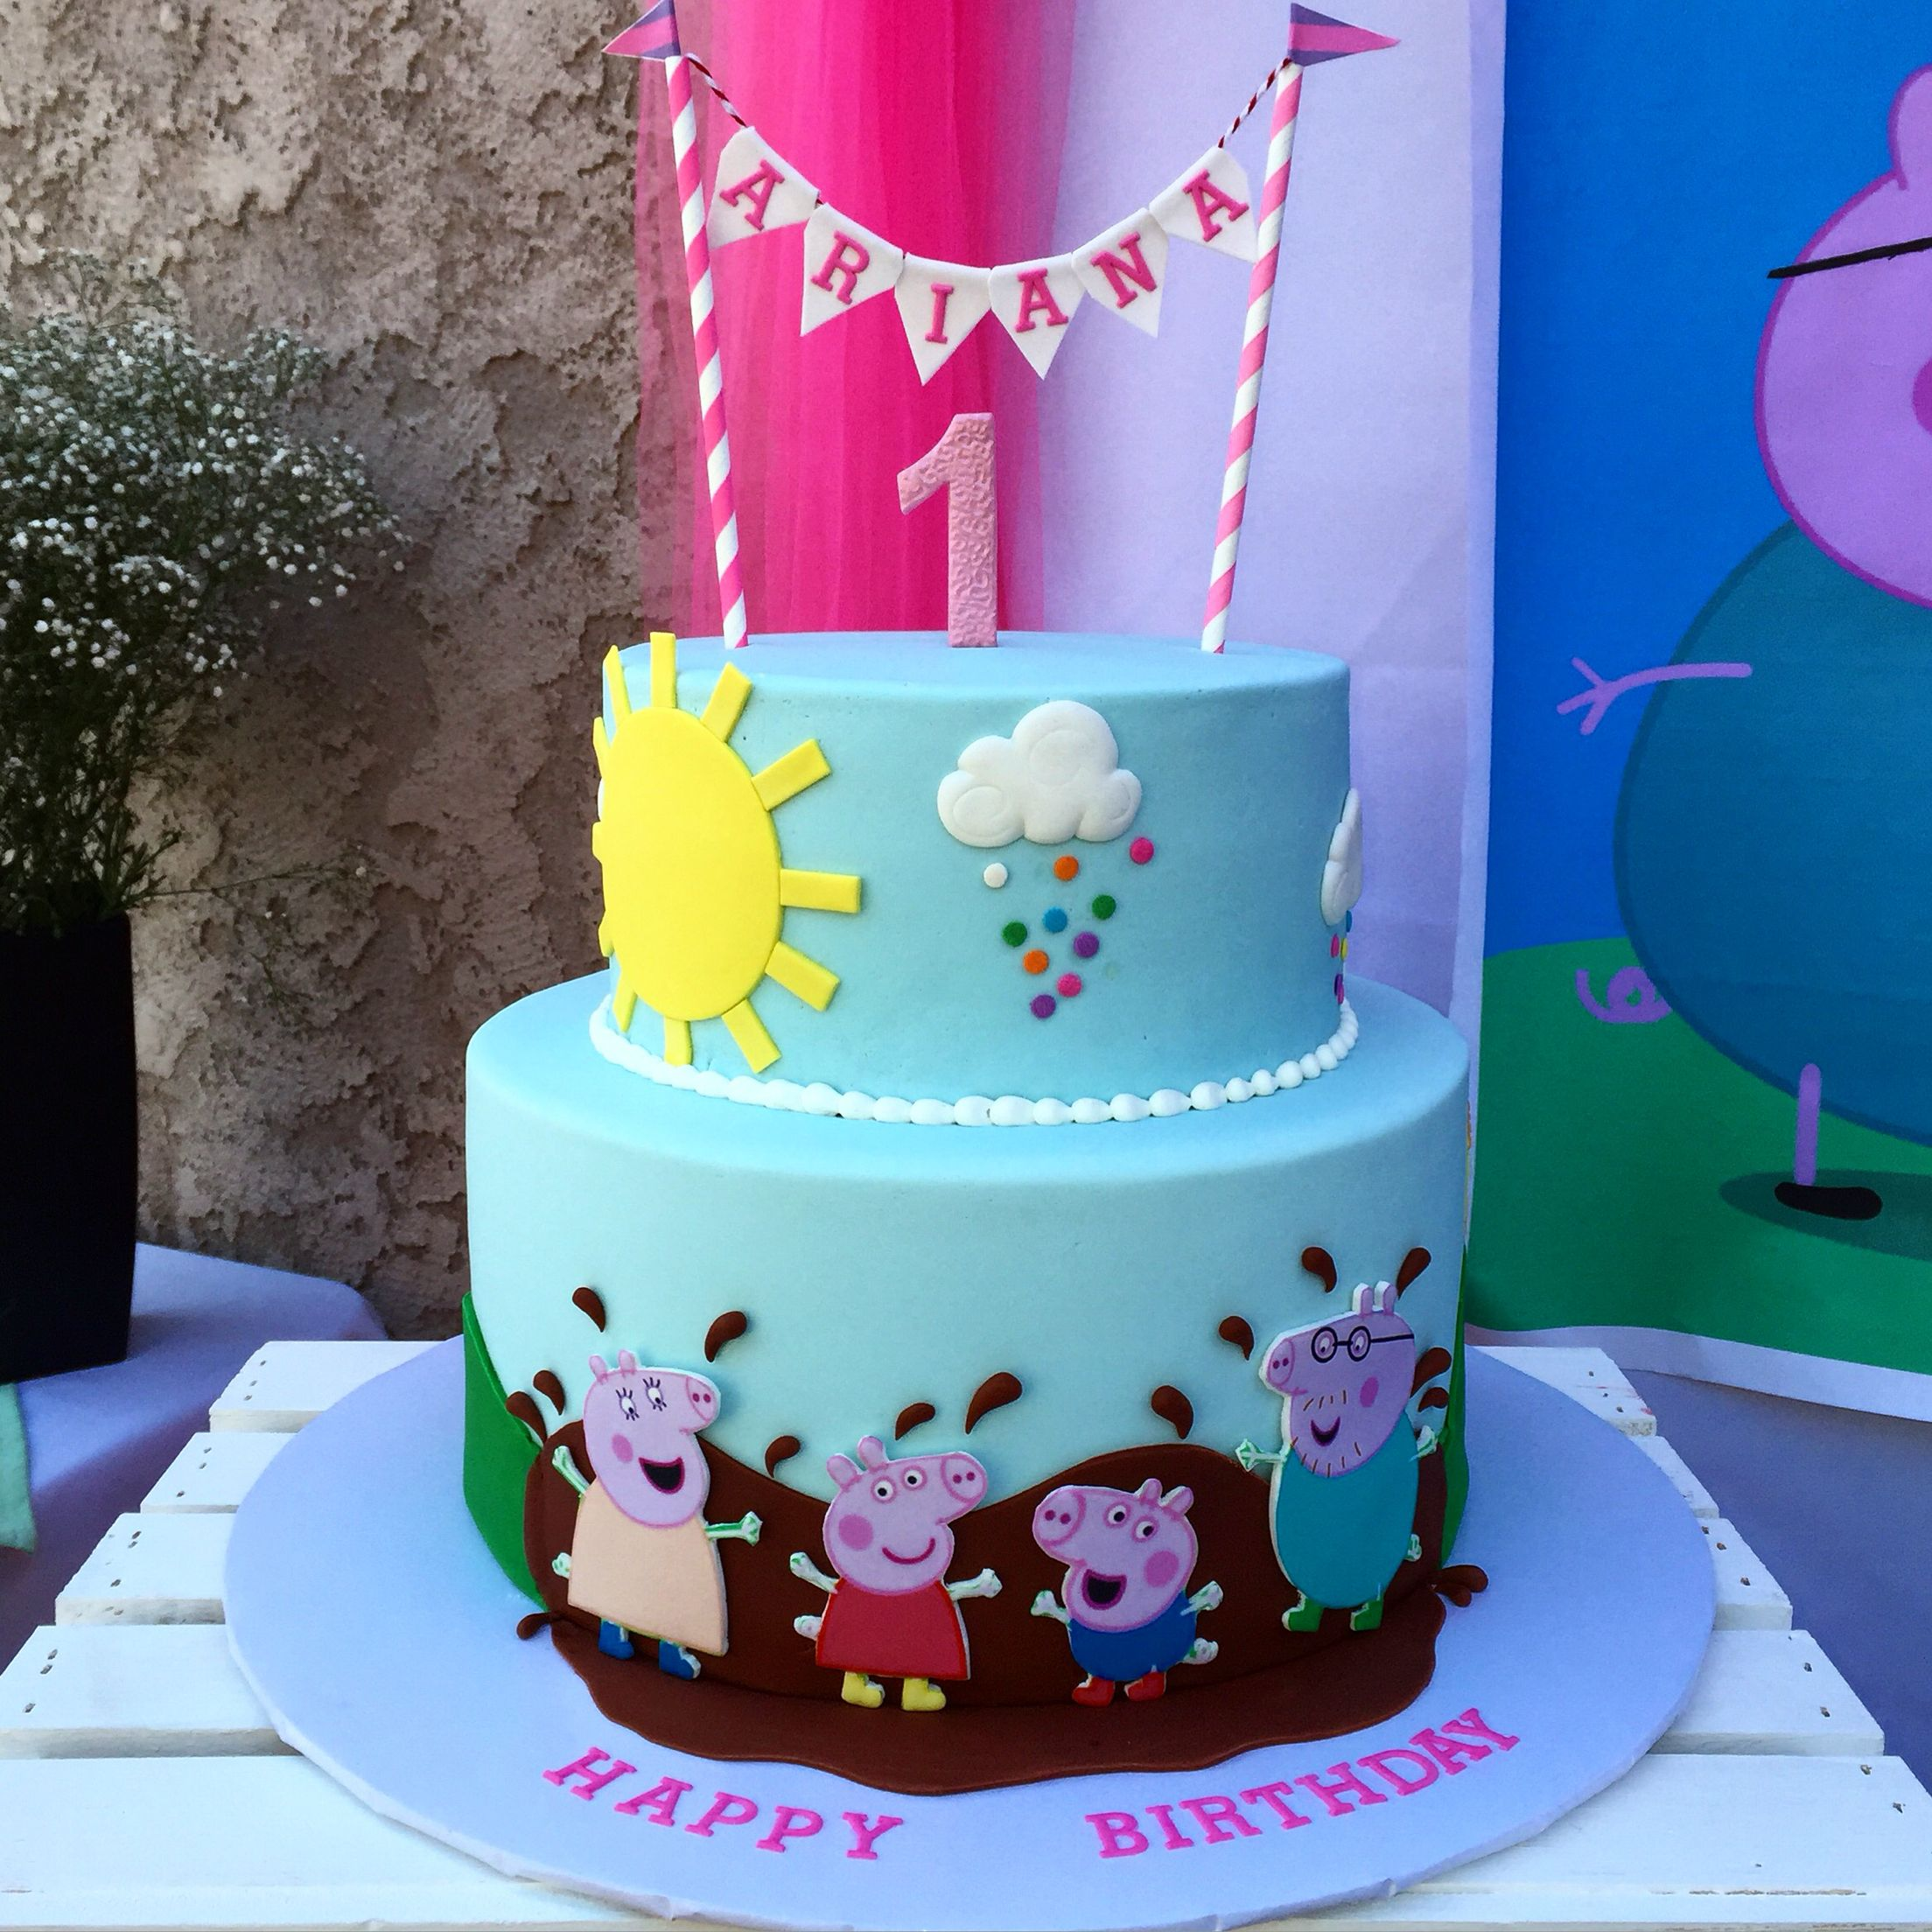 I made this peppa pig muddy puddles 2 tier cake with edible images.  sc 1 st  Pinterest & I made this peppa pig muddy puddles 2 tier cake with edible images ...